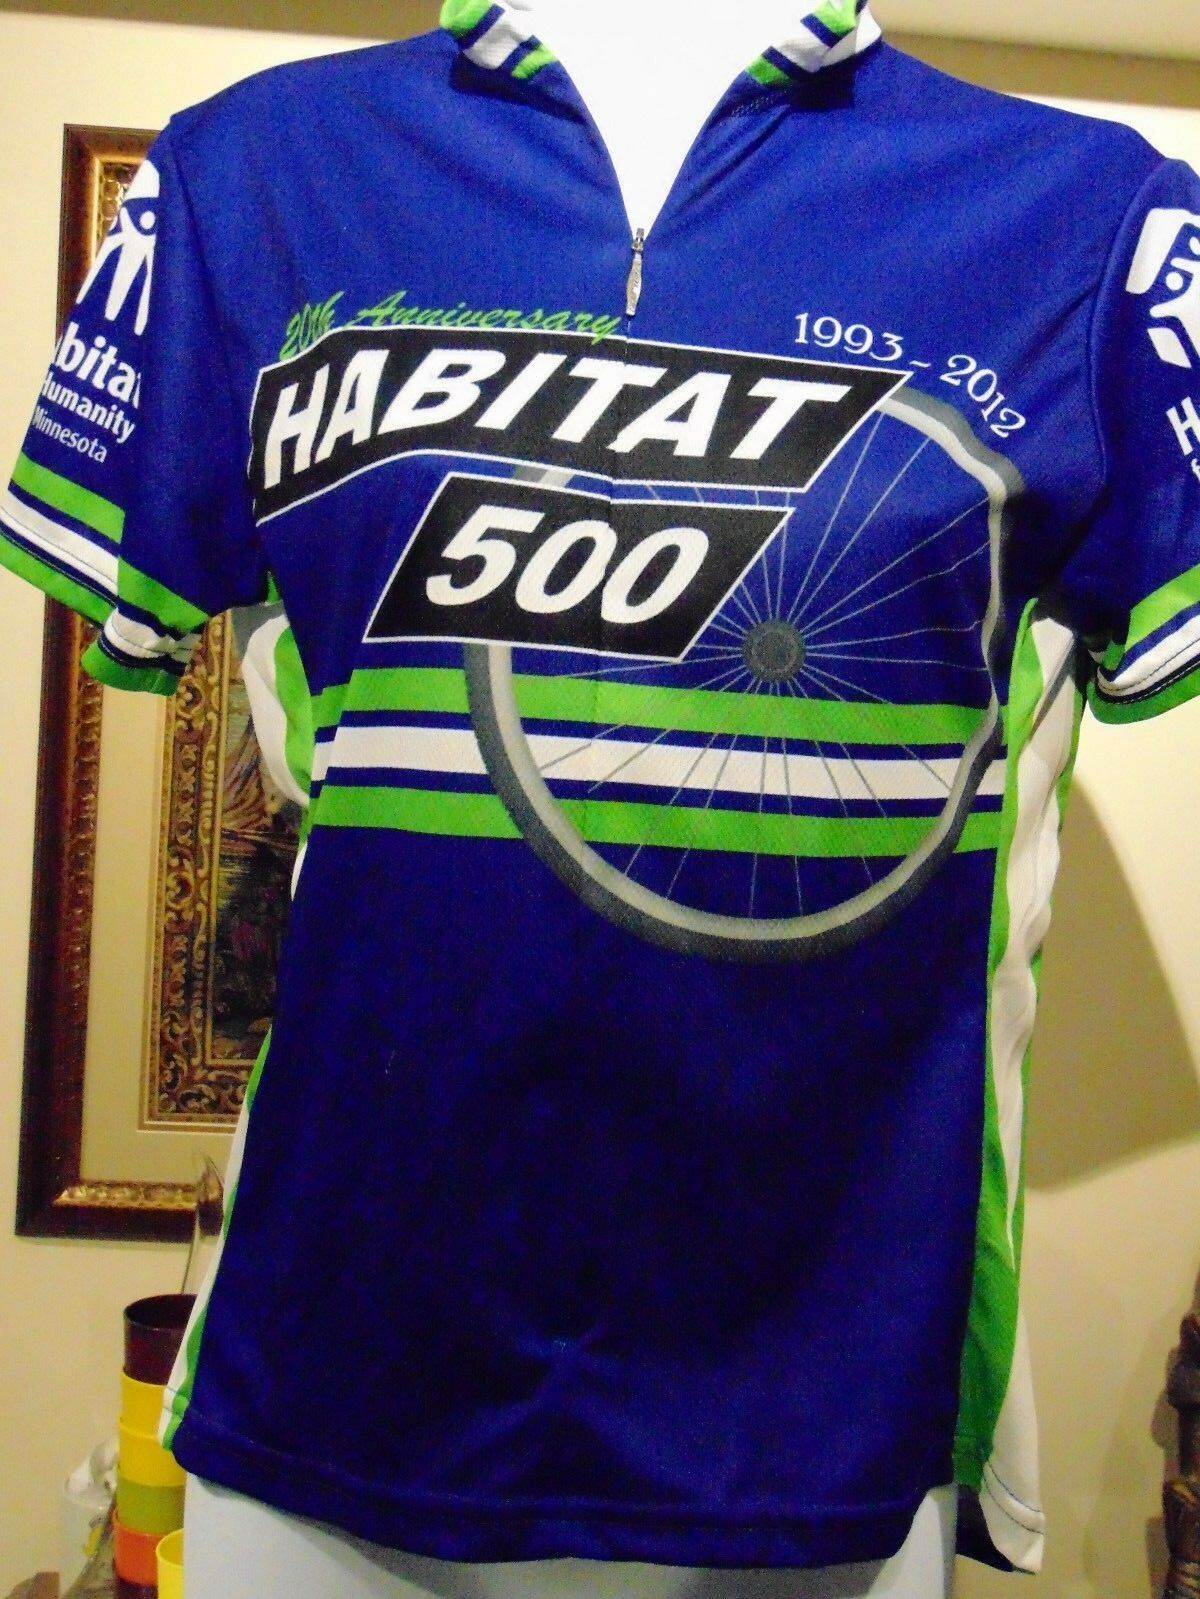 Voler Women's Habitat For Humanity Minnesota 2000 Size Small Cycling Jersey